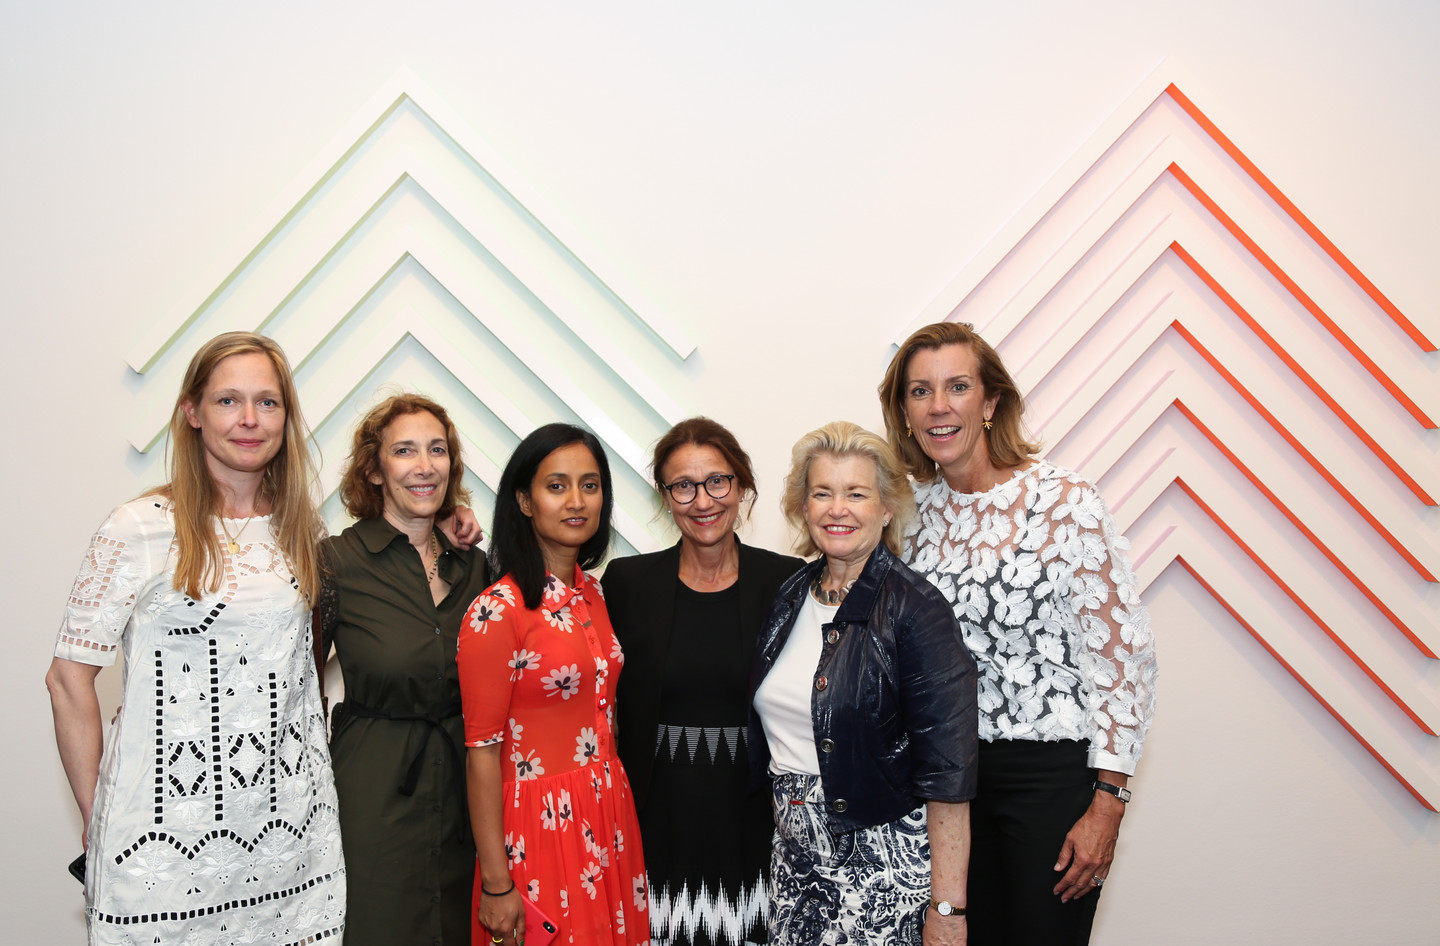 A photograph of a group of five light-skinned women and one medium-skinned woman dressed in cocktail attire stand in front of a geometric wall sculpture.